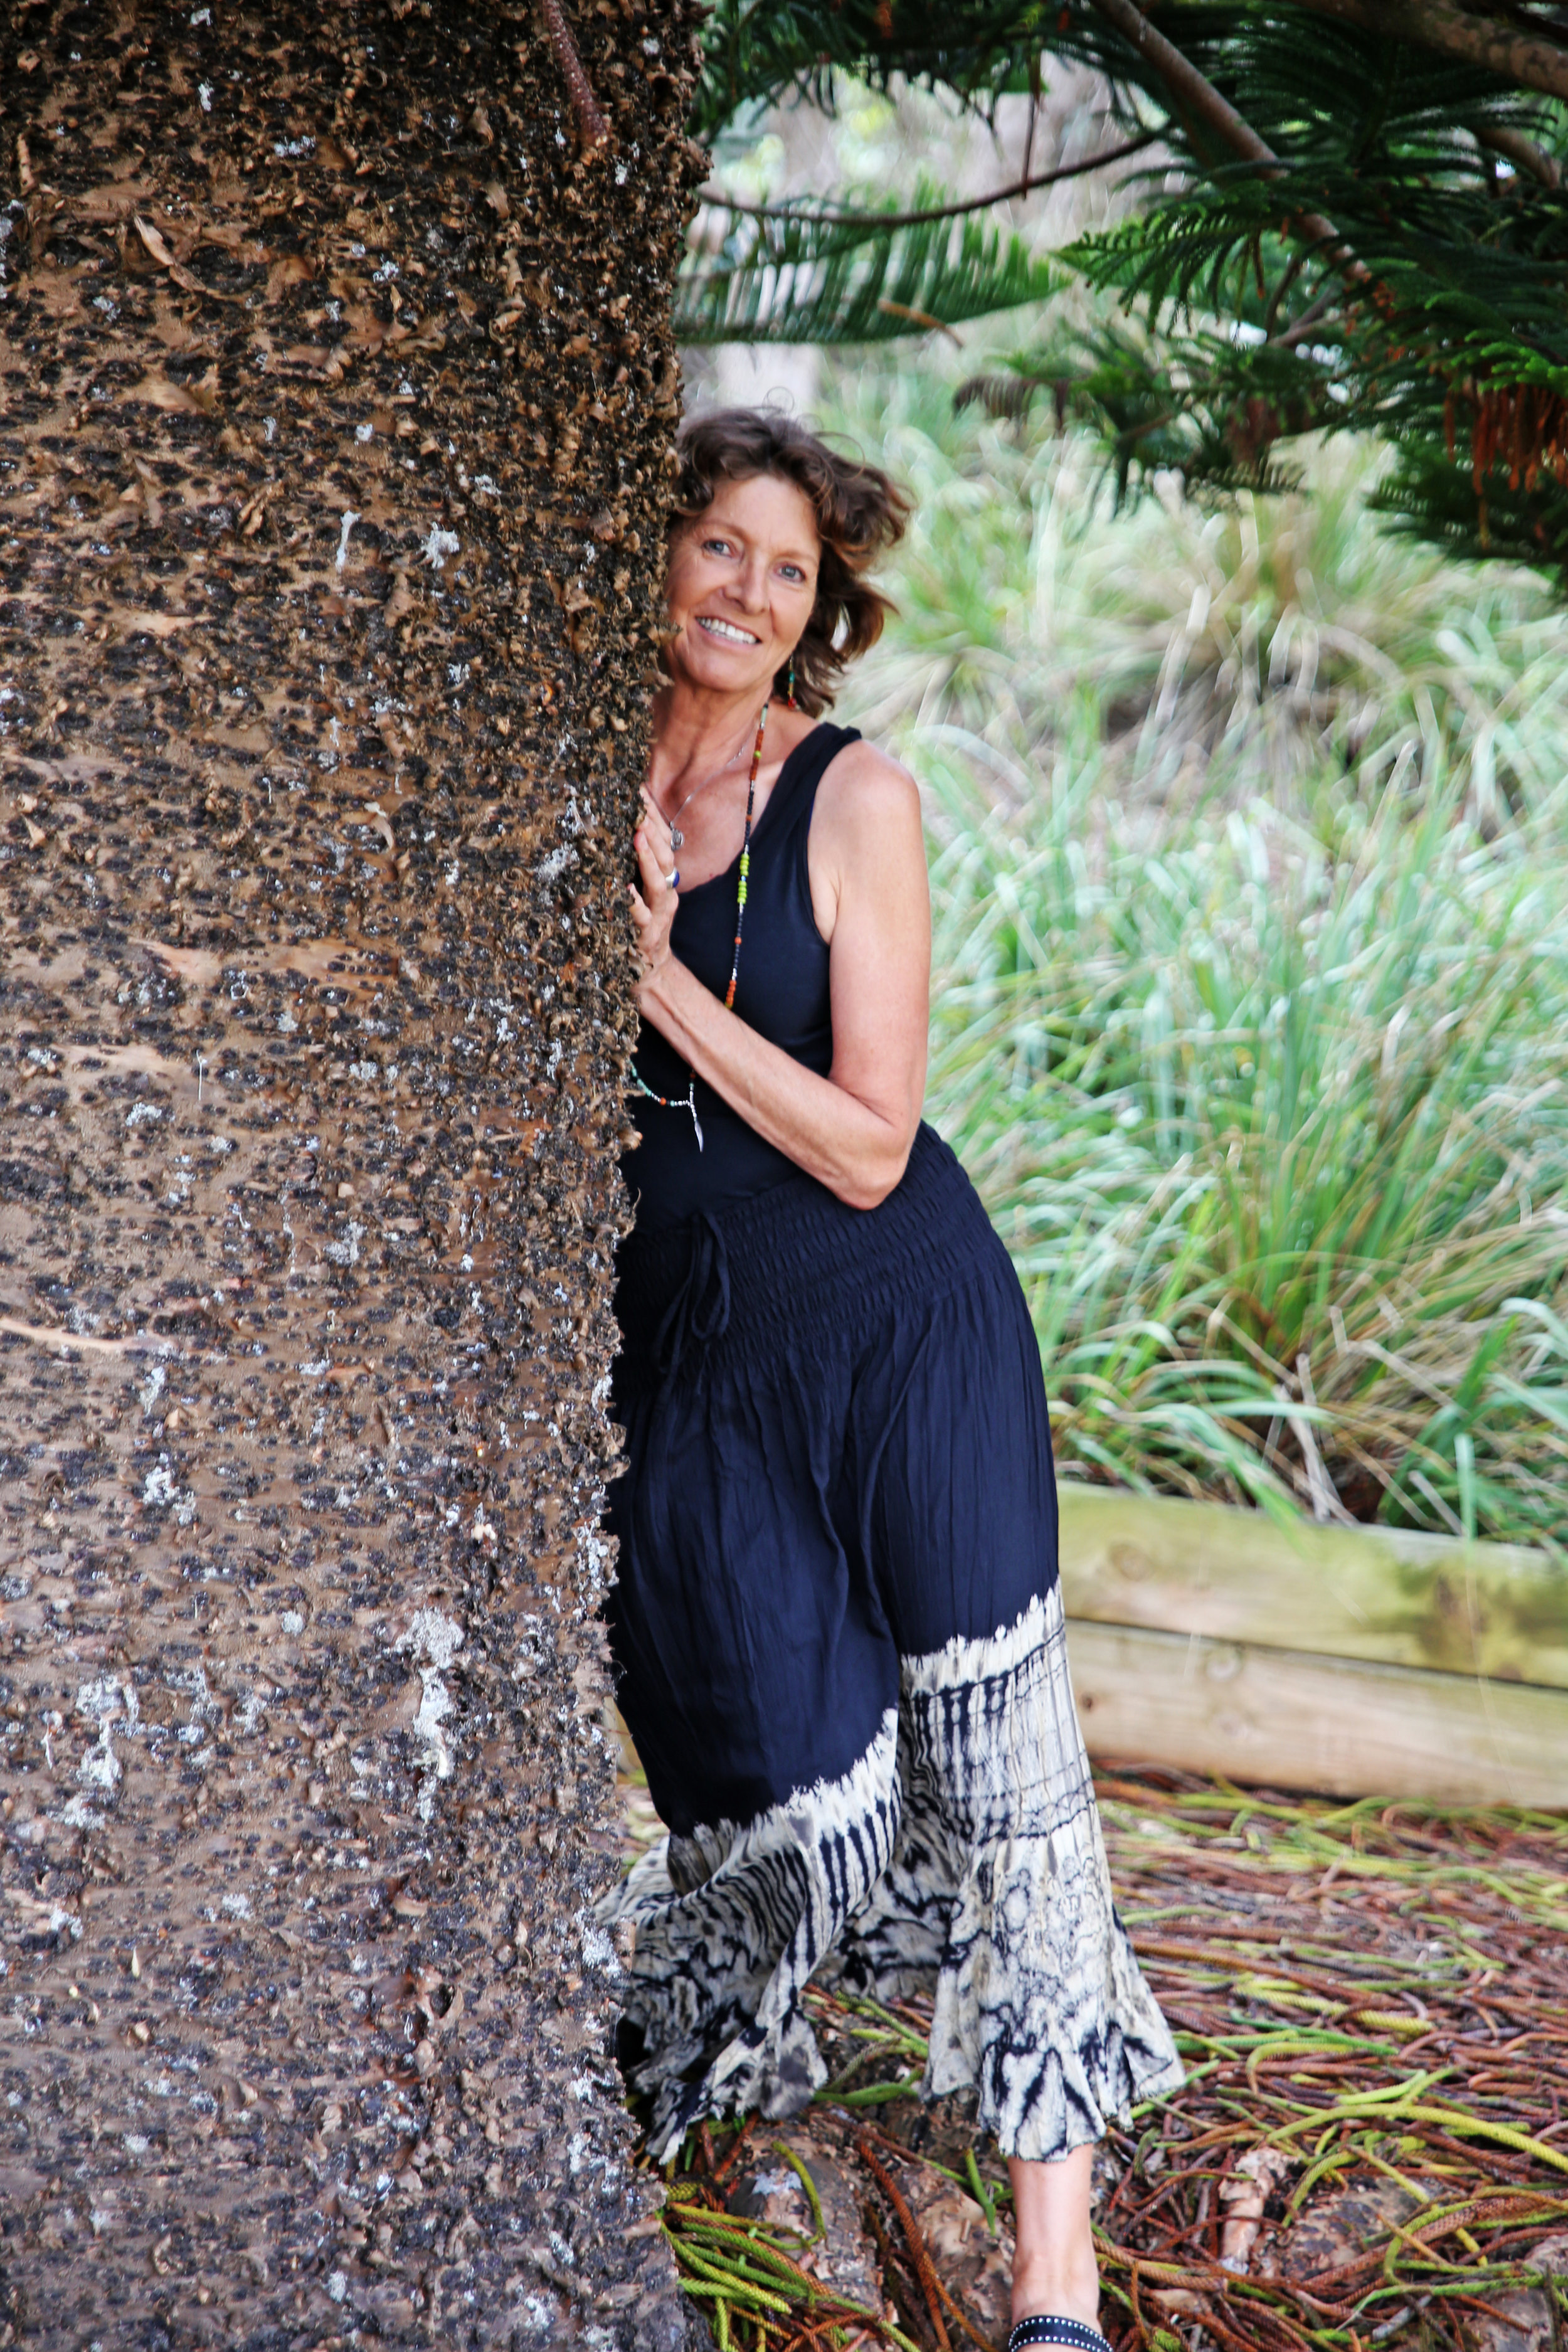 Welcome - My name is Bernadette Ginnane, Bernie for short.   I am a Shamanic Practitioner, Sound Energy Healer, Yoga Teacher, an empowering Workshop Facilitator and writer, incorporating yoga, sound healing, ceremony and meditation into my practice and workshops.Are you ready to re-write a new story for yourself?A story of healing, empowerment, peace and purpose?Are you ready to go within, to dive deep to bring your shadow side into the light of awareness where healing and real change can take place?Through gentle yoga and sound energy healing I assist others to gently release tension in their physical body, and to calm and quieten their minds. Through gentle shamanic drumming meditations, either private or group sessions, I assist others to go within and connect with their own inner knowing and wisdom. I specialise in the removing energetic blockages and re-balancing the natural flow of the energy with the body.